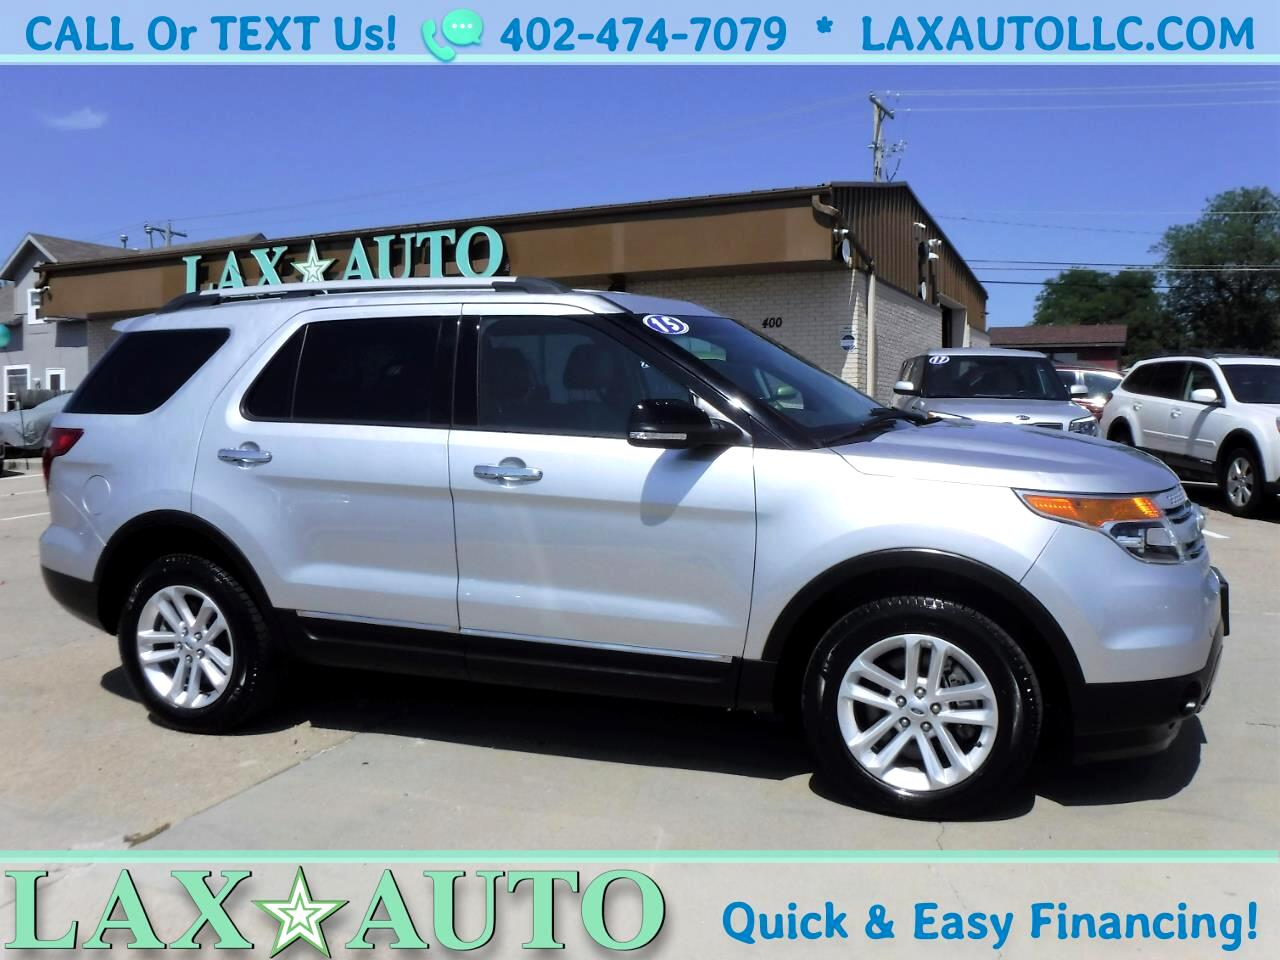 2015 Ford Explorer XLT 4WD* Only 29k miles!* Navi! 3rd Row! Loaded! *